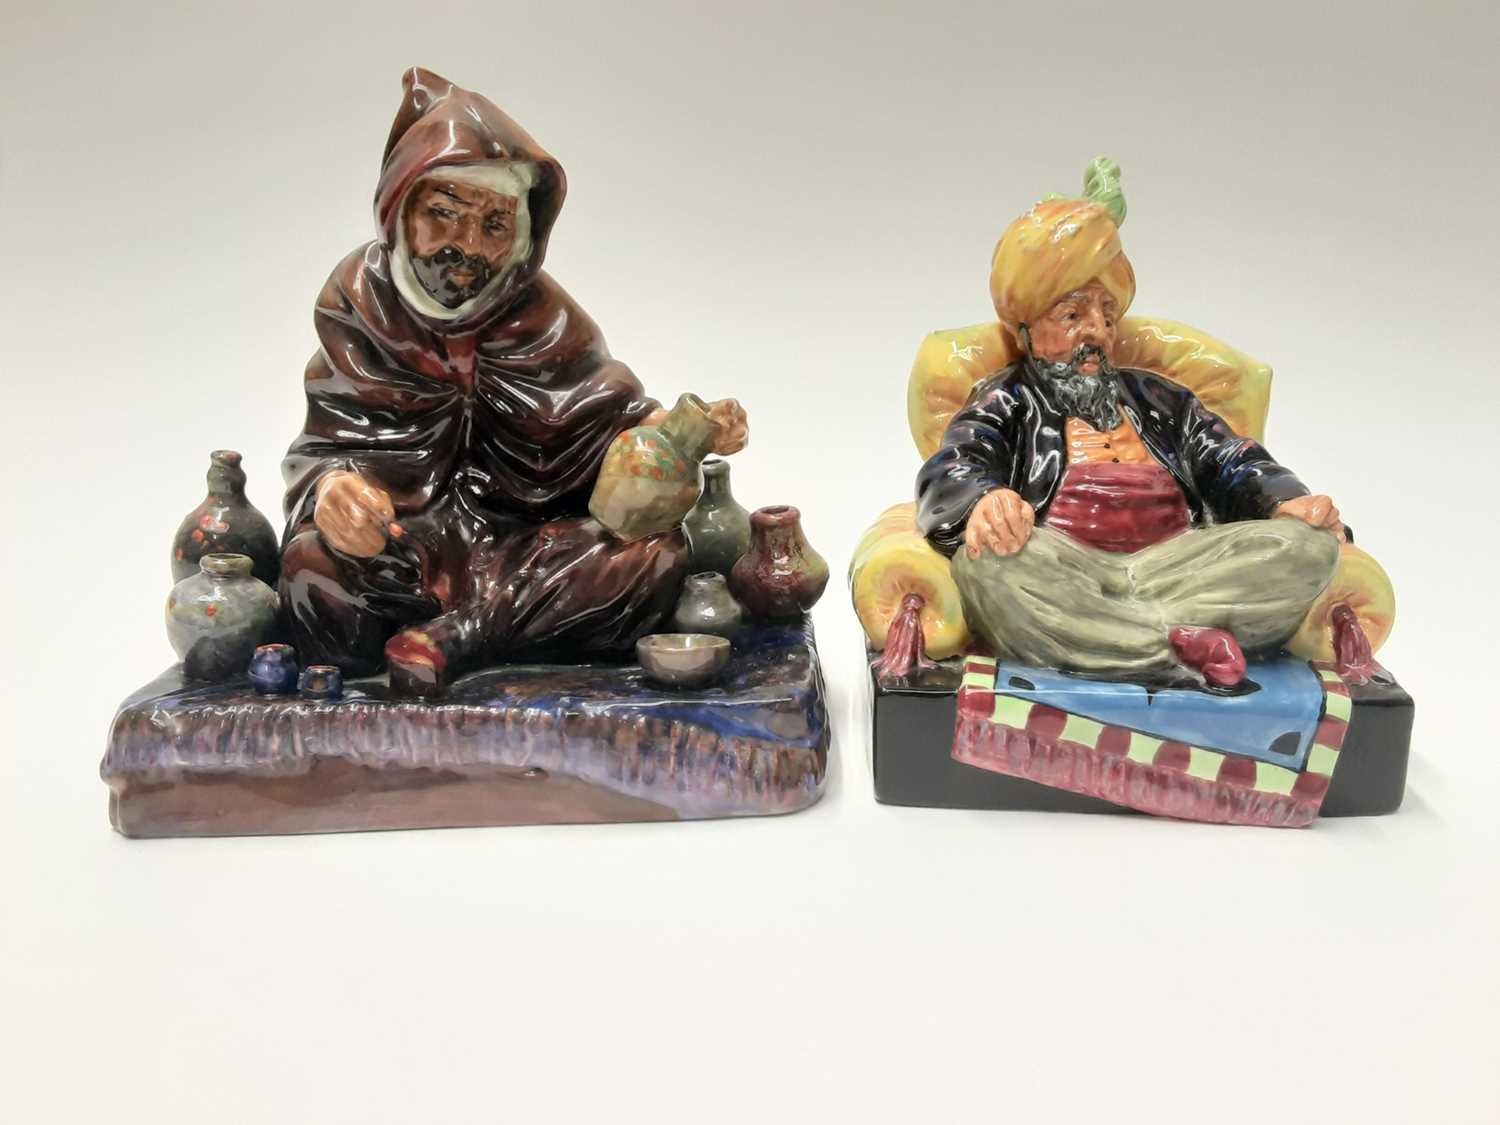 Lot 25 - Two Royal Doulton figures - Abdullah HN2104 and The Potter HN1493